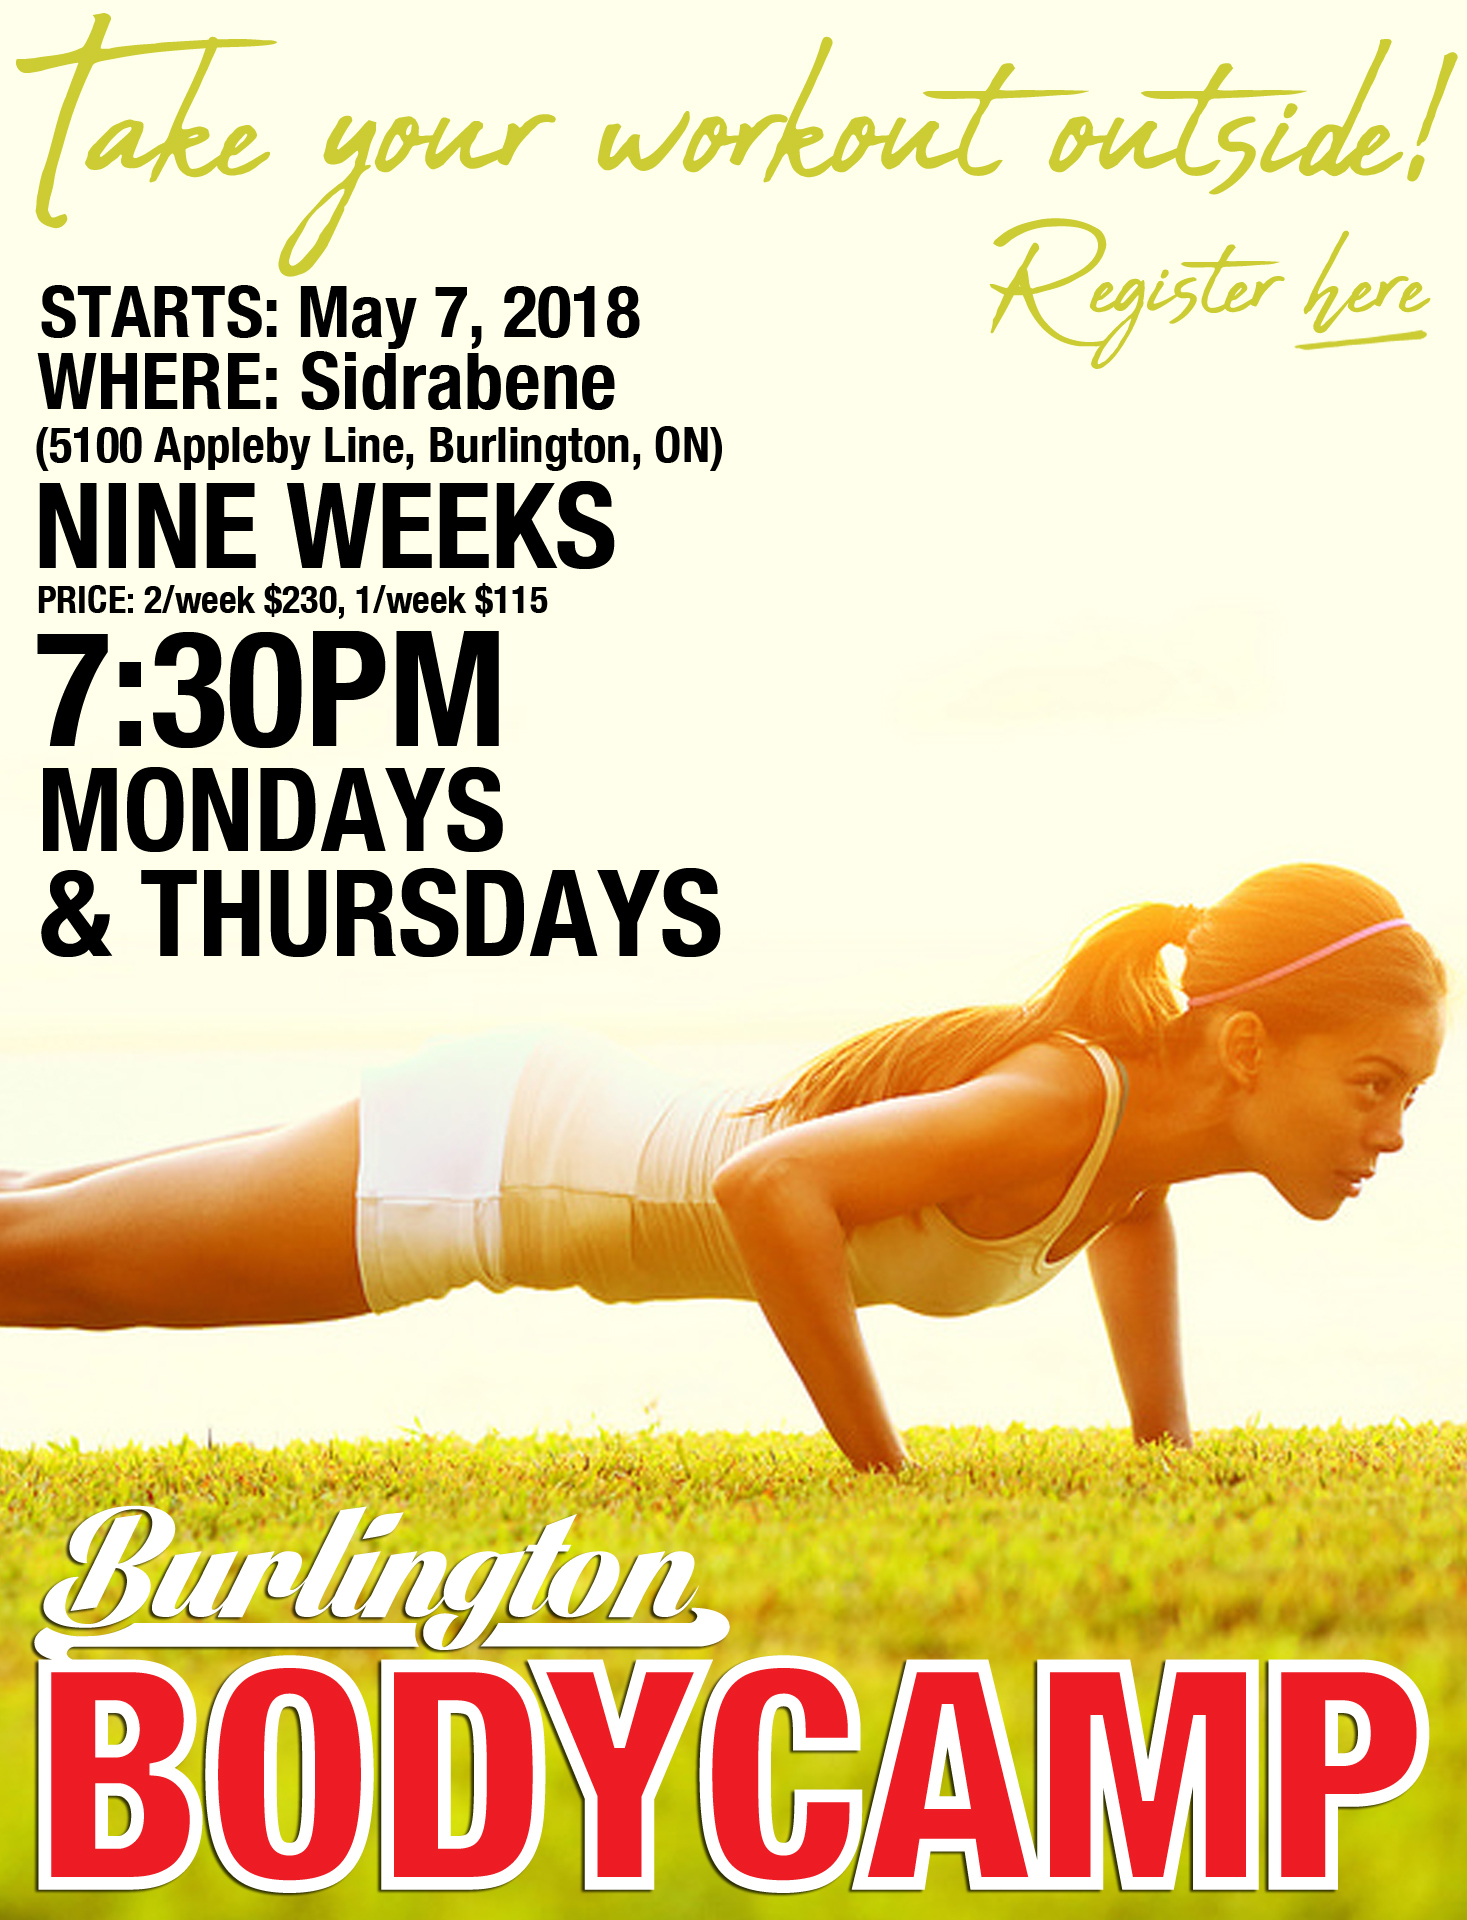 Outdoor Boot Camp in Burlington, Starts May 7 2018